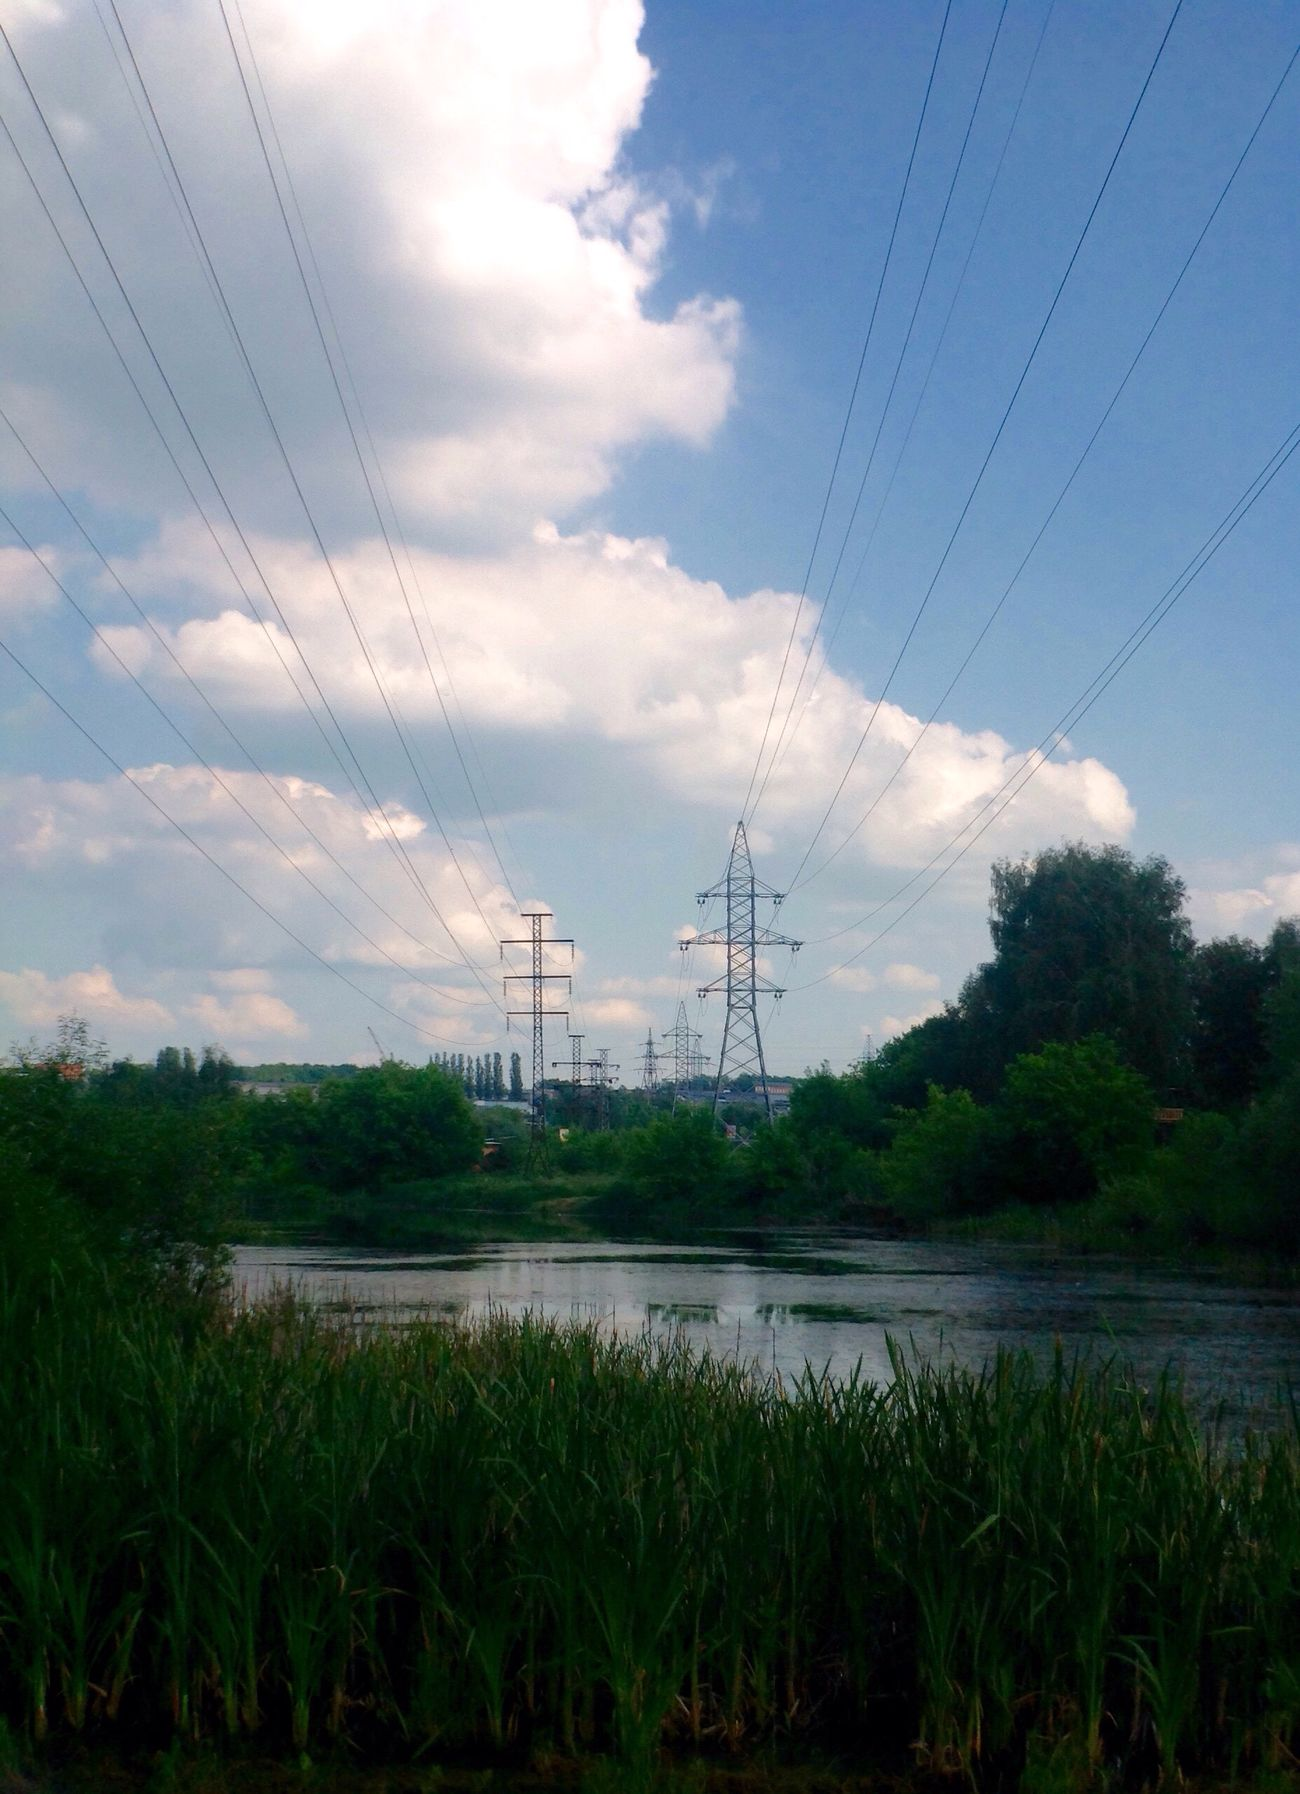 Electricity  Cable Sky Power Line  Electricity Pylon Power Supply Cloud - Sky Technology Nature Scenics Electricity Tower Landscape Connection Outdoors No People Grass